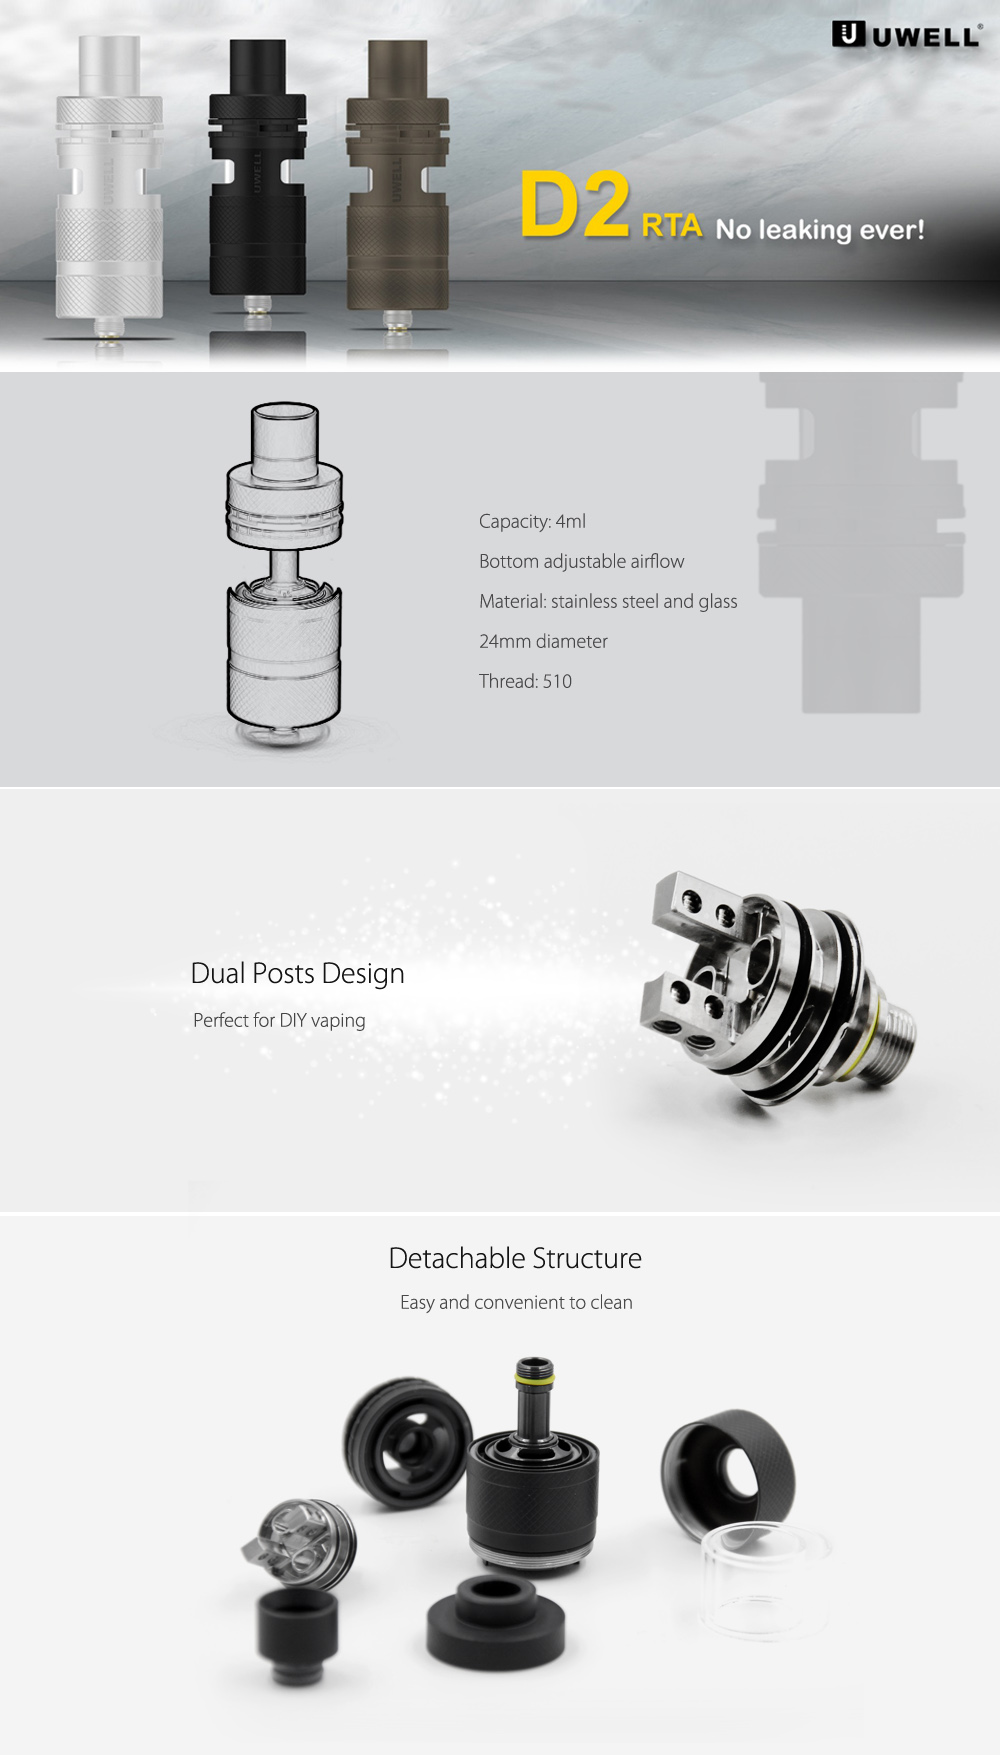 Original UWELL D2 RTA Tank with 4ml Capacity / Bottom Adjustable Airflow for E Cigarette